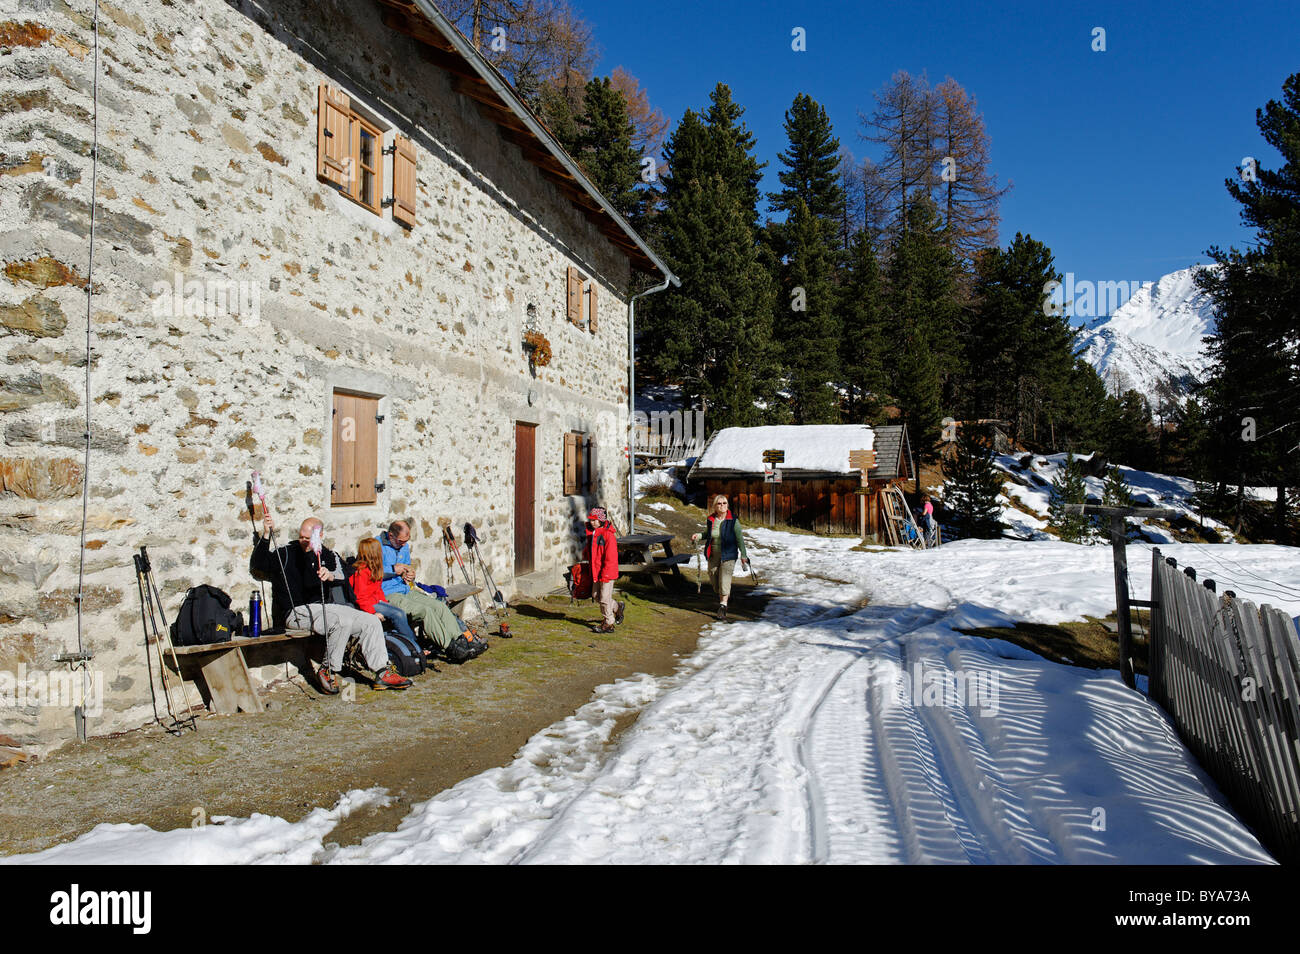 Lyvialm alp, Stelvio National Park, Val Martello, Vinschgau, Southern Tyrol, Italy, Europe Stock Photo